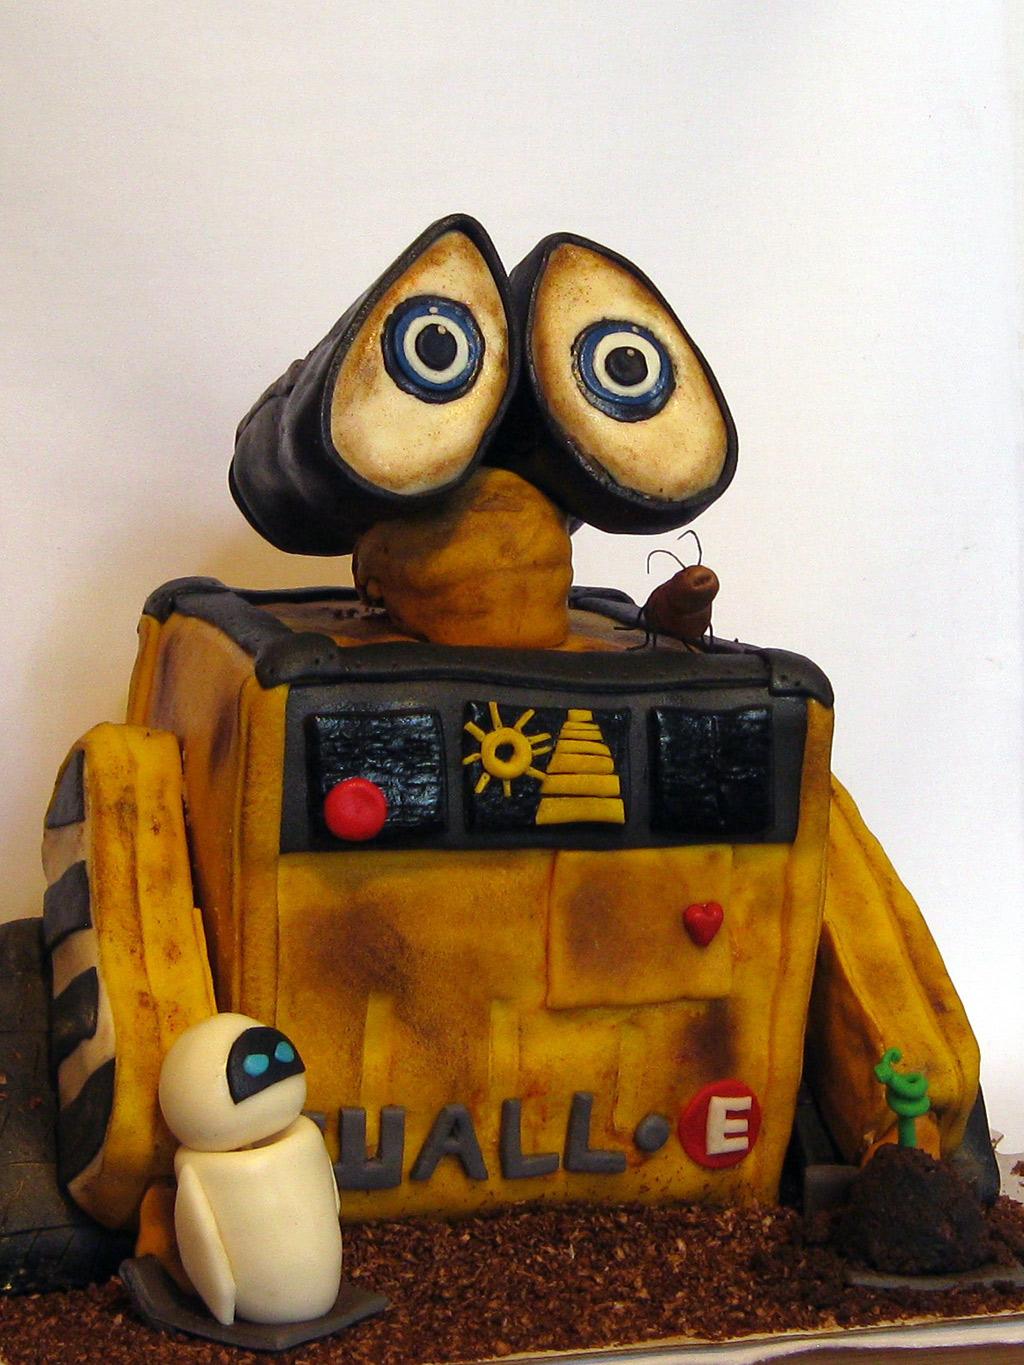 After Yet Another Long Cake Break I Got Asked If Could Make A Wall E For Birthday Party Love Making These Types Of Cakes Well All